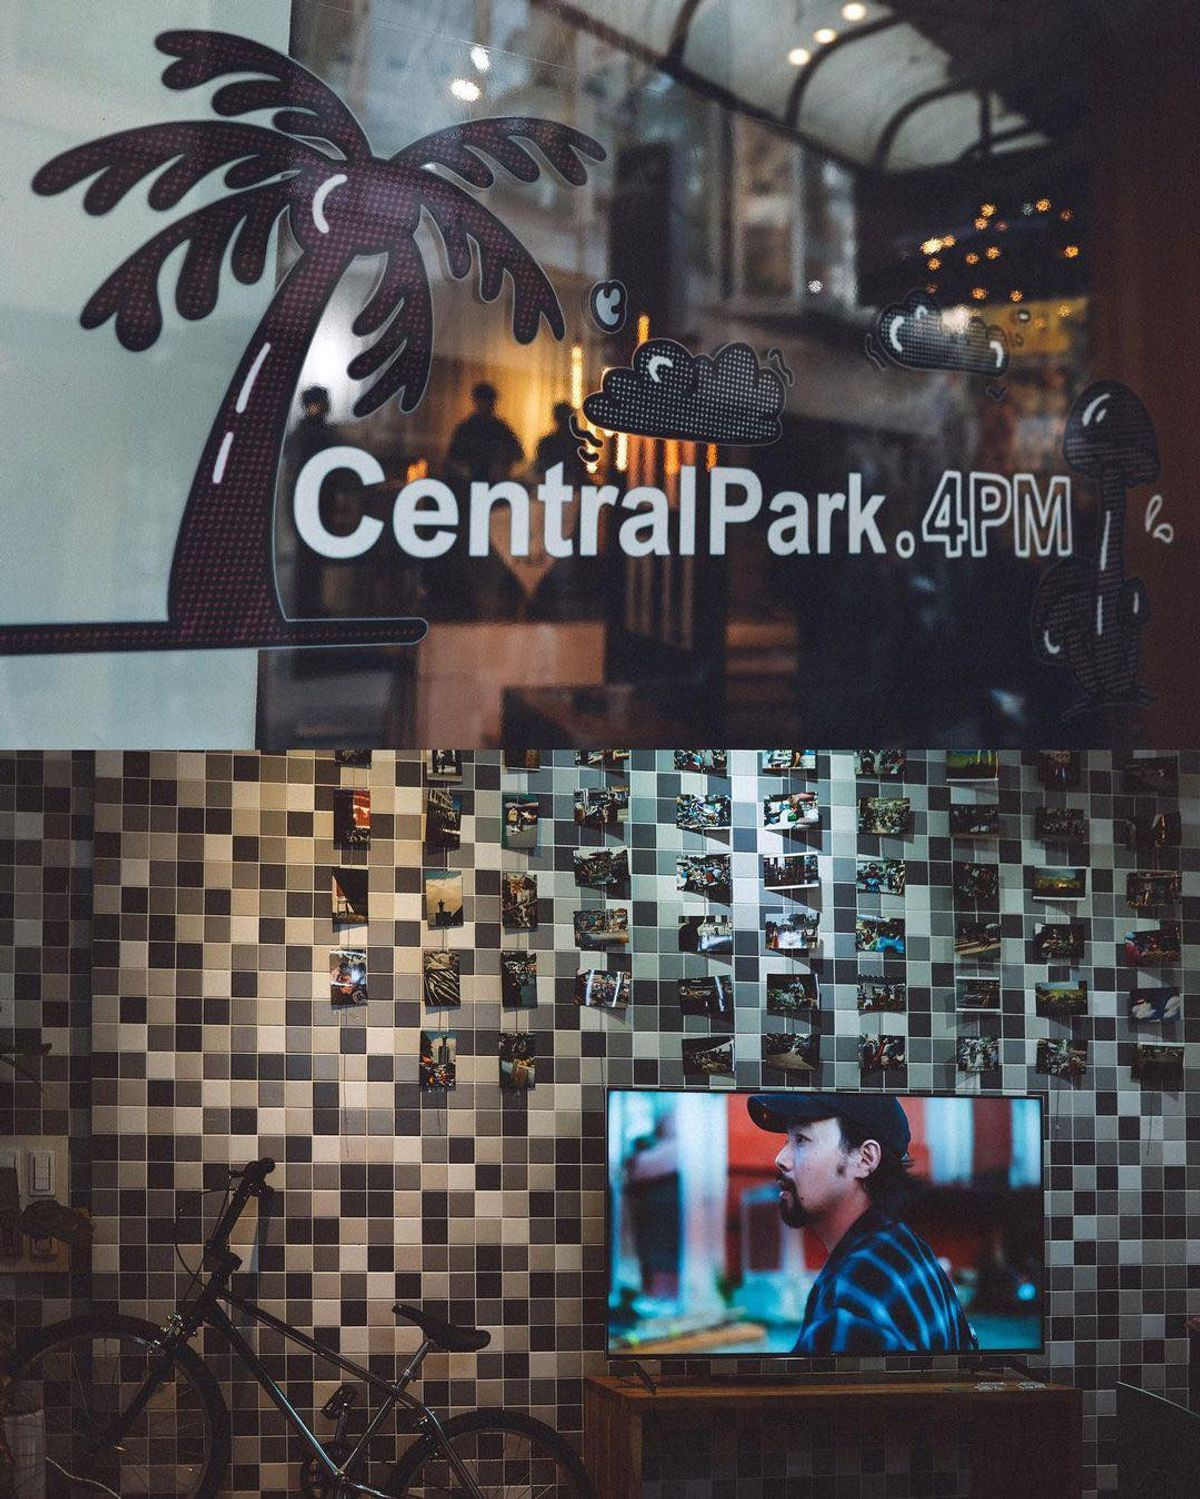 CentralPark.4PM Pop-Up Store 2021 @nexhype taichung